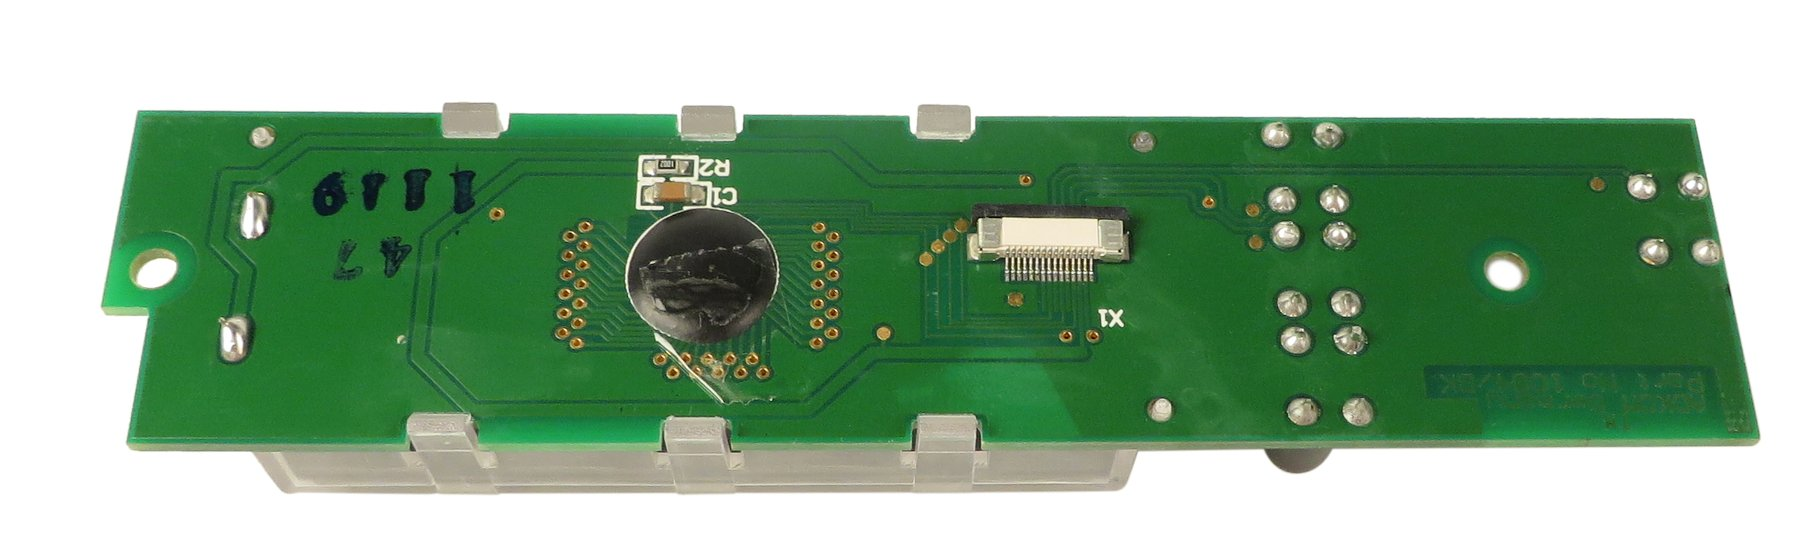 LCD Display PCB Assembly for EM100 G2